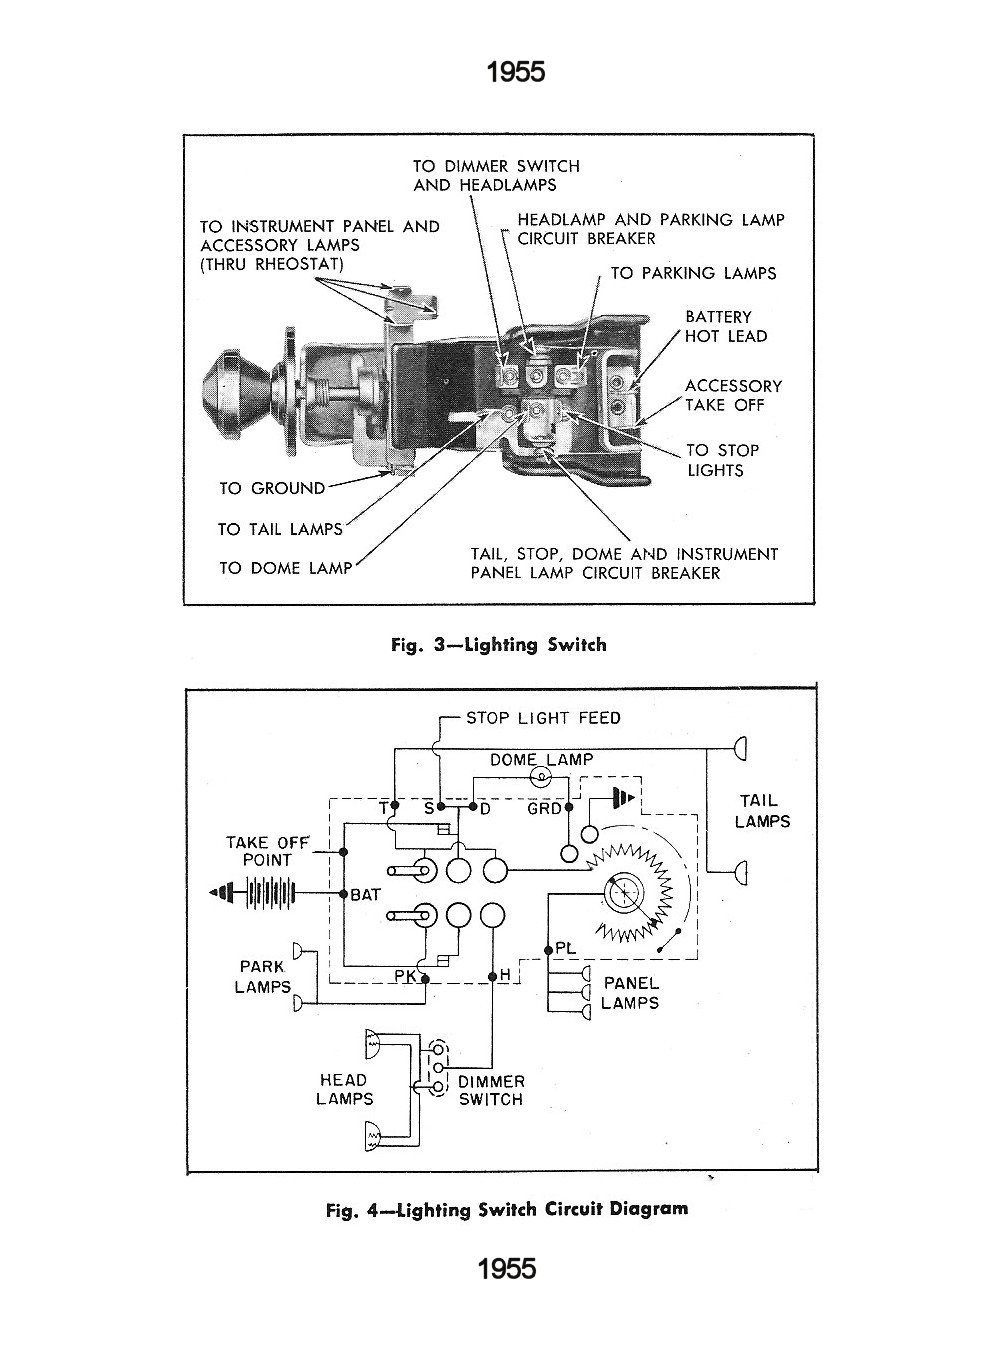 56 chevy headlamp switch wiring 4 1 spikeballclubkoeln de \u2022chevy wiring diagrams rh chevy oldcarmanualproject com gm headlight wiring diagram 1956 chevy headlight switch wiring